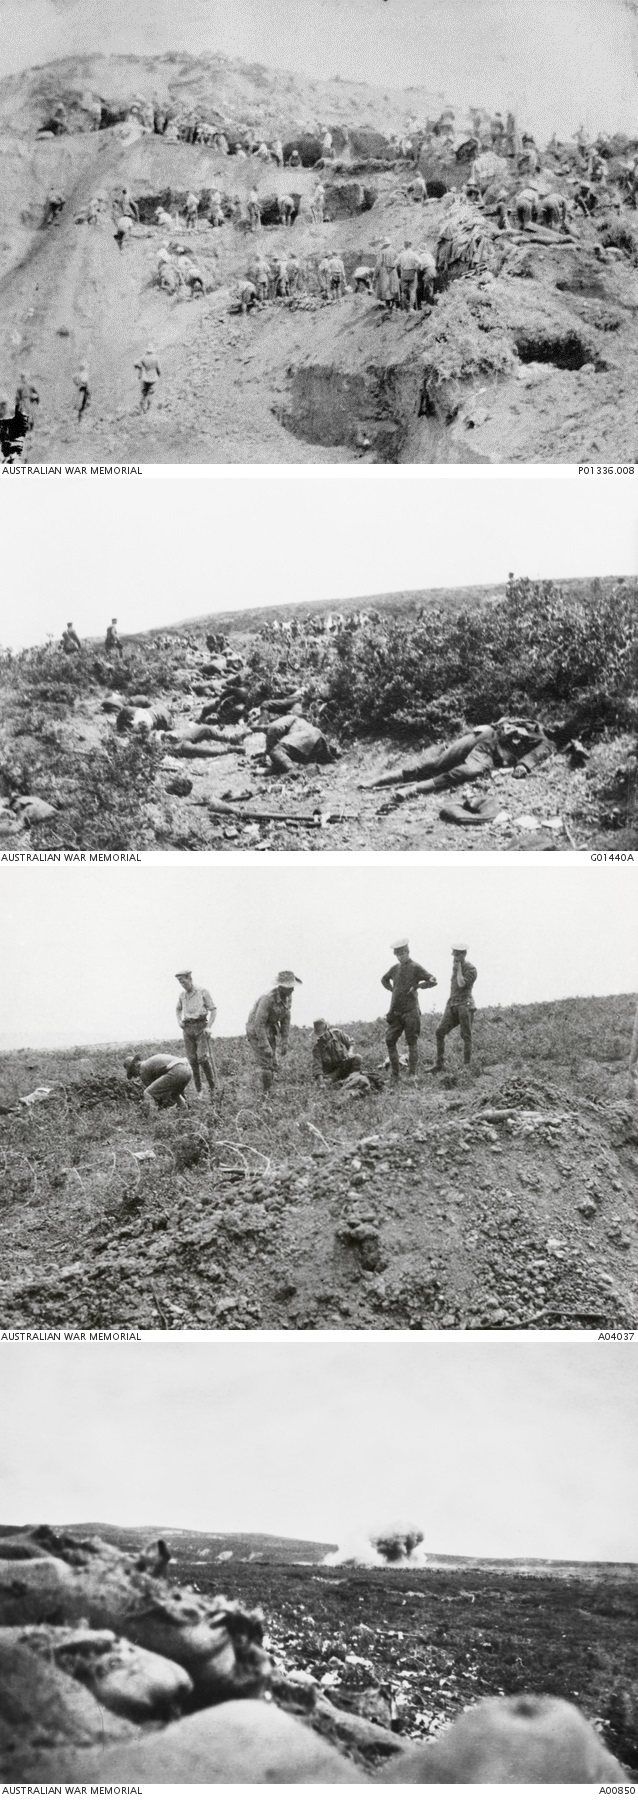 Scenes from different battles during the August Offensive